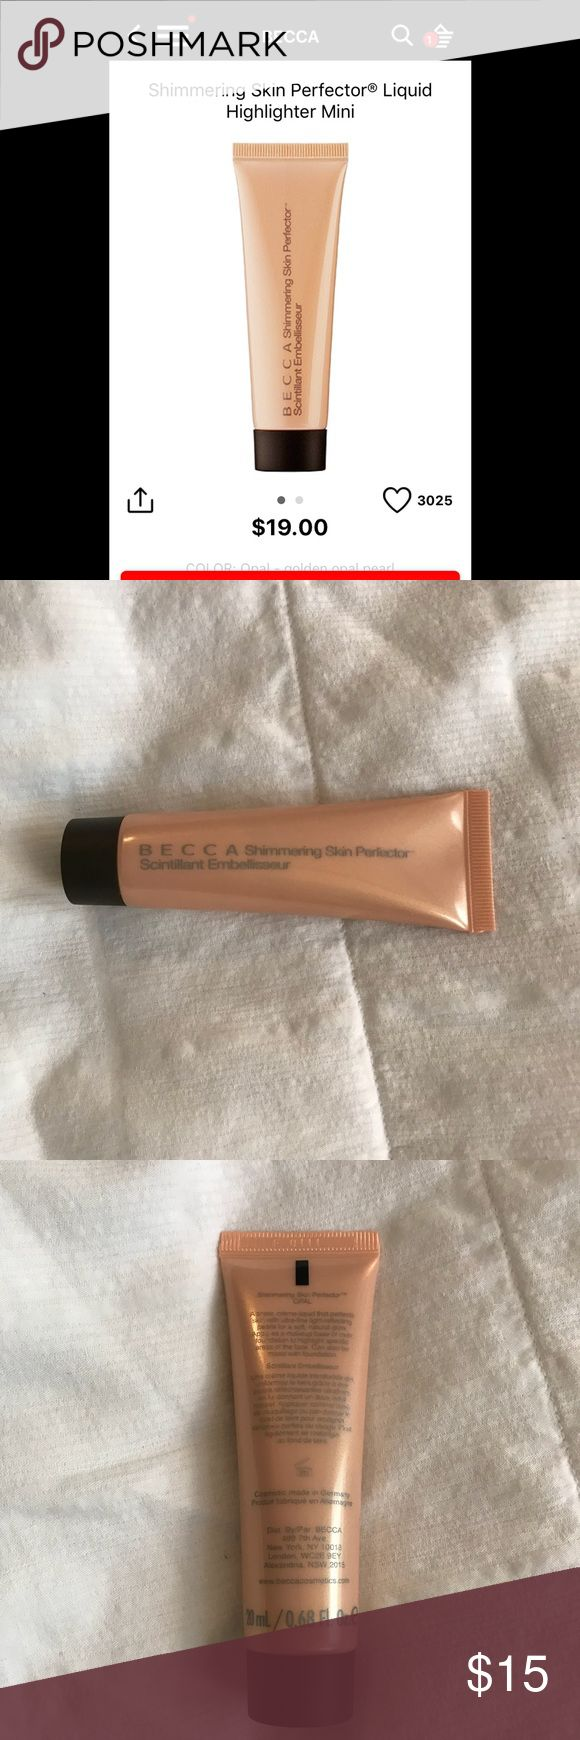 Becca Shimmering Skin Perfector Liquid in Opal Becca Shimmering Skin Perfector Liquid in Opal highlighter. Brand new from Sephora. Sephora Makeup